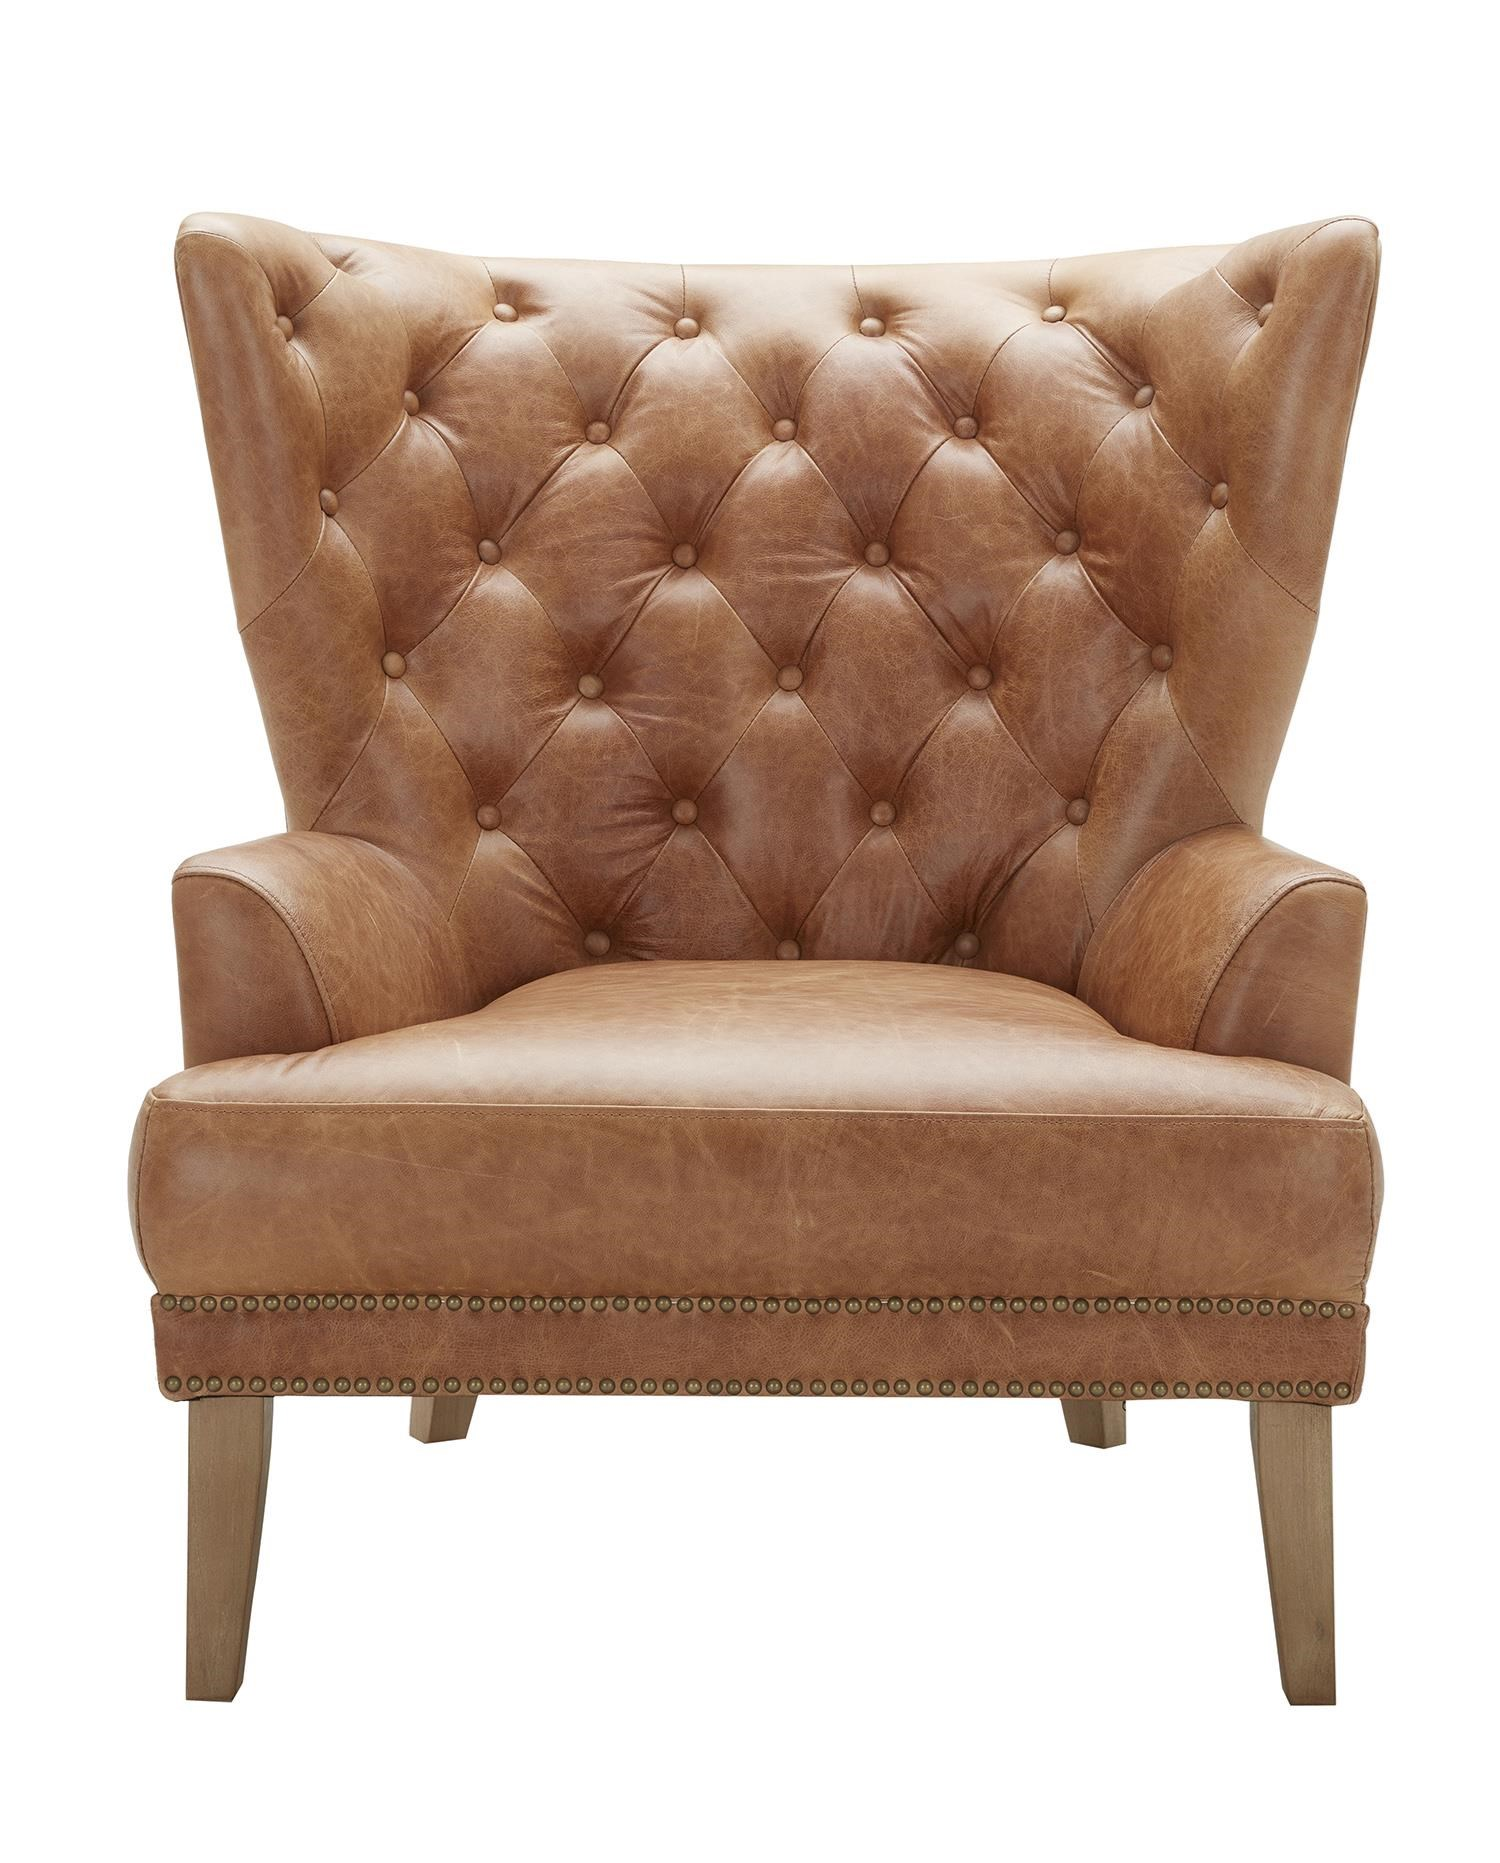 Grandin Tufted Leather Chair by Urban Evolution at Belfort Furniture